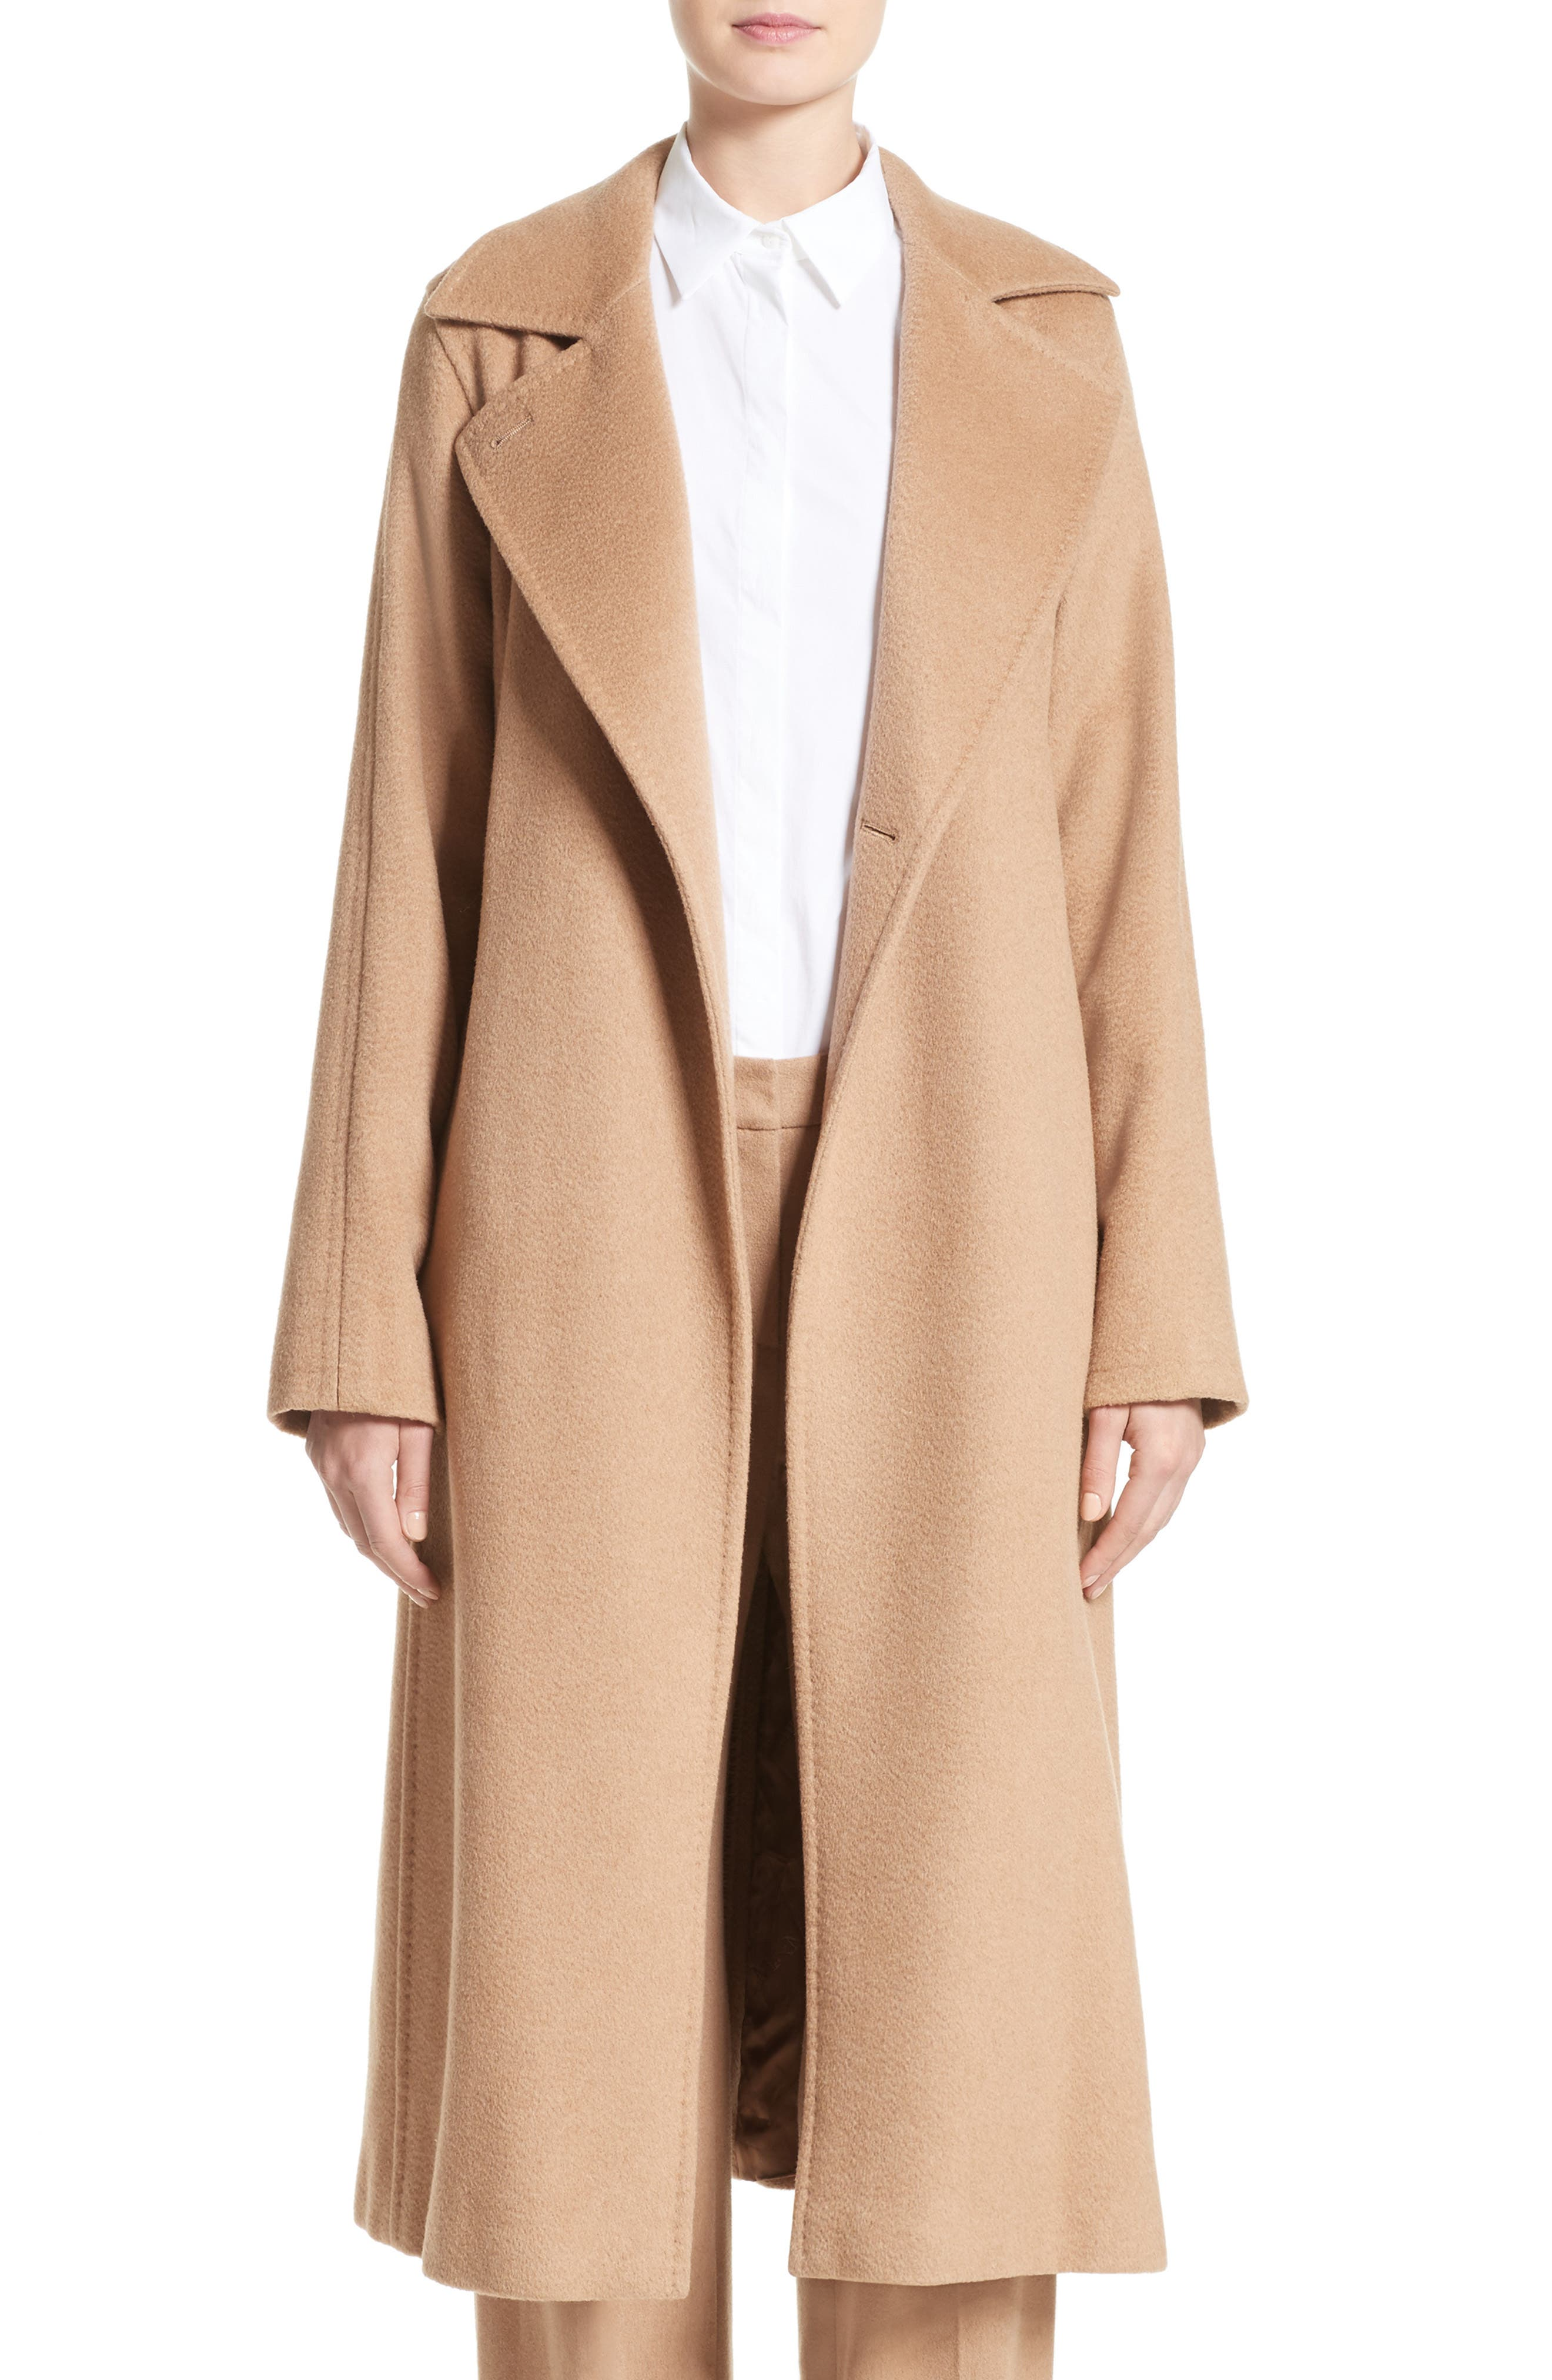 Alternate Image 1 Selected - Max Mara 'Manuela' Camel Hair Coat